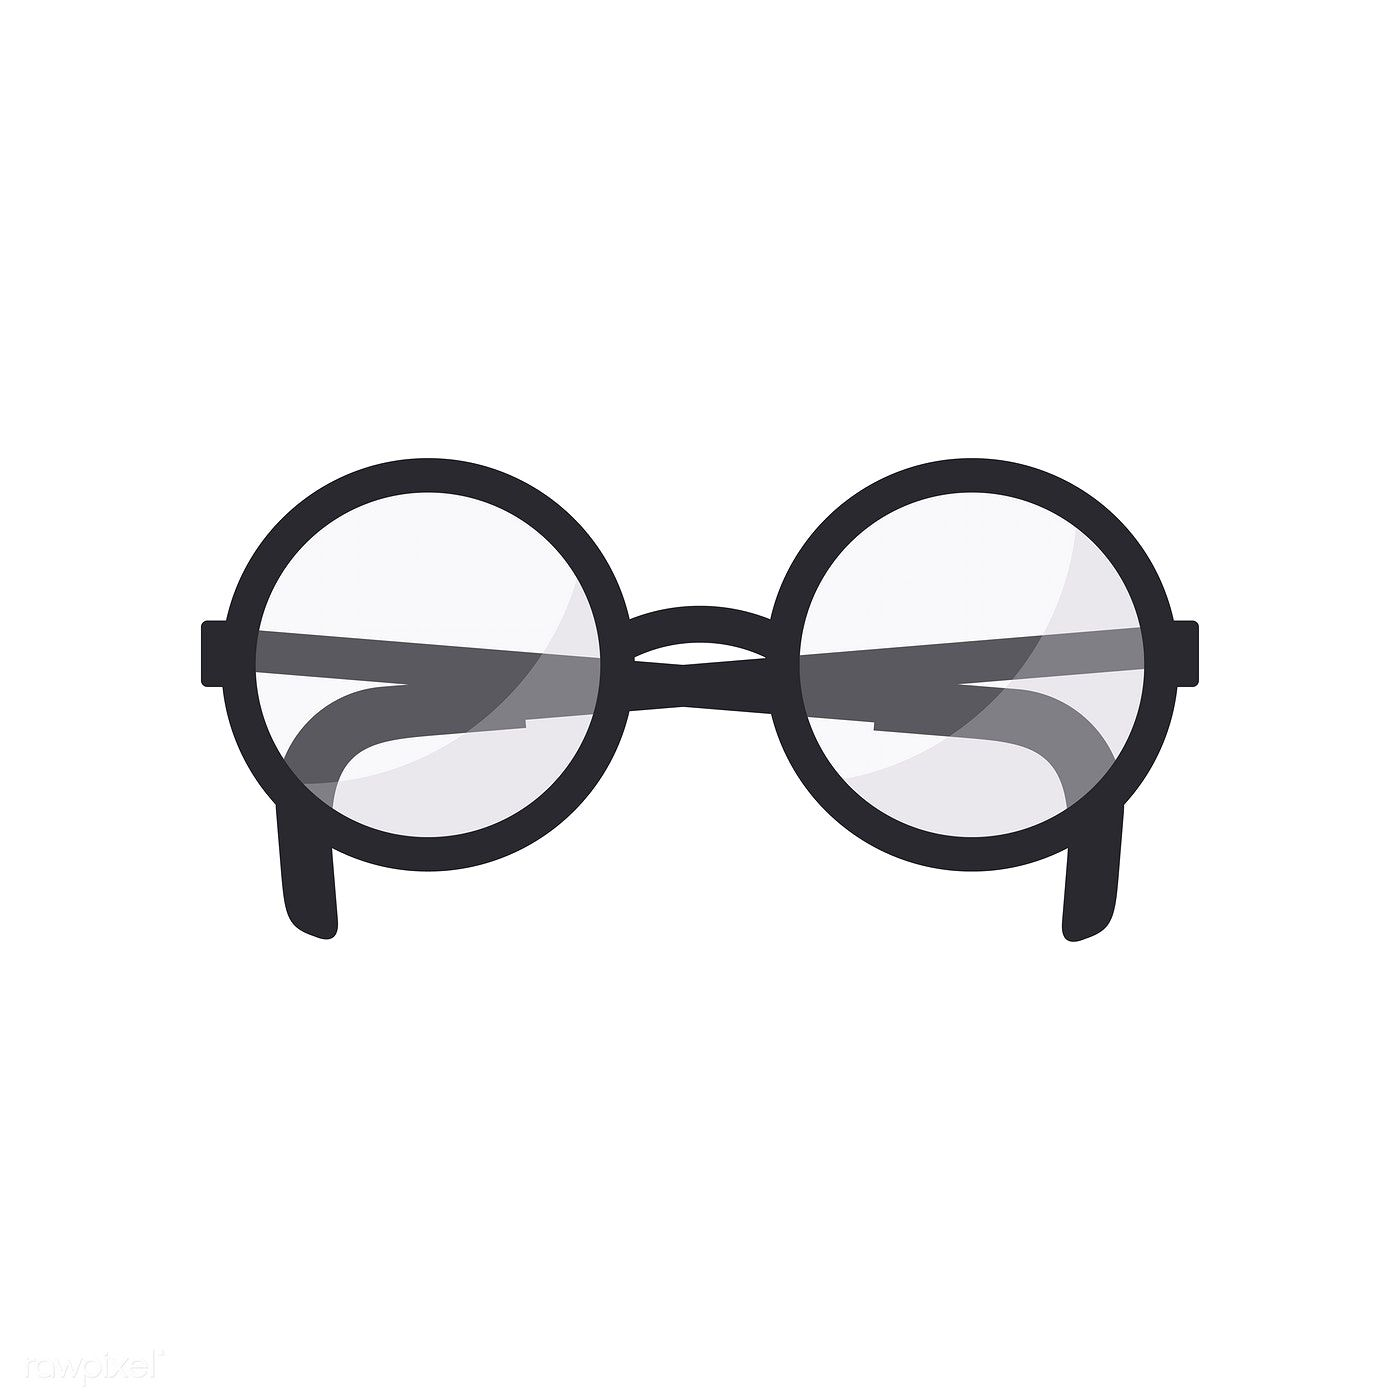 Illustration Of Glasses Icon Free Image By Rawpixel Com Glasses Illustration Icon